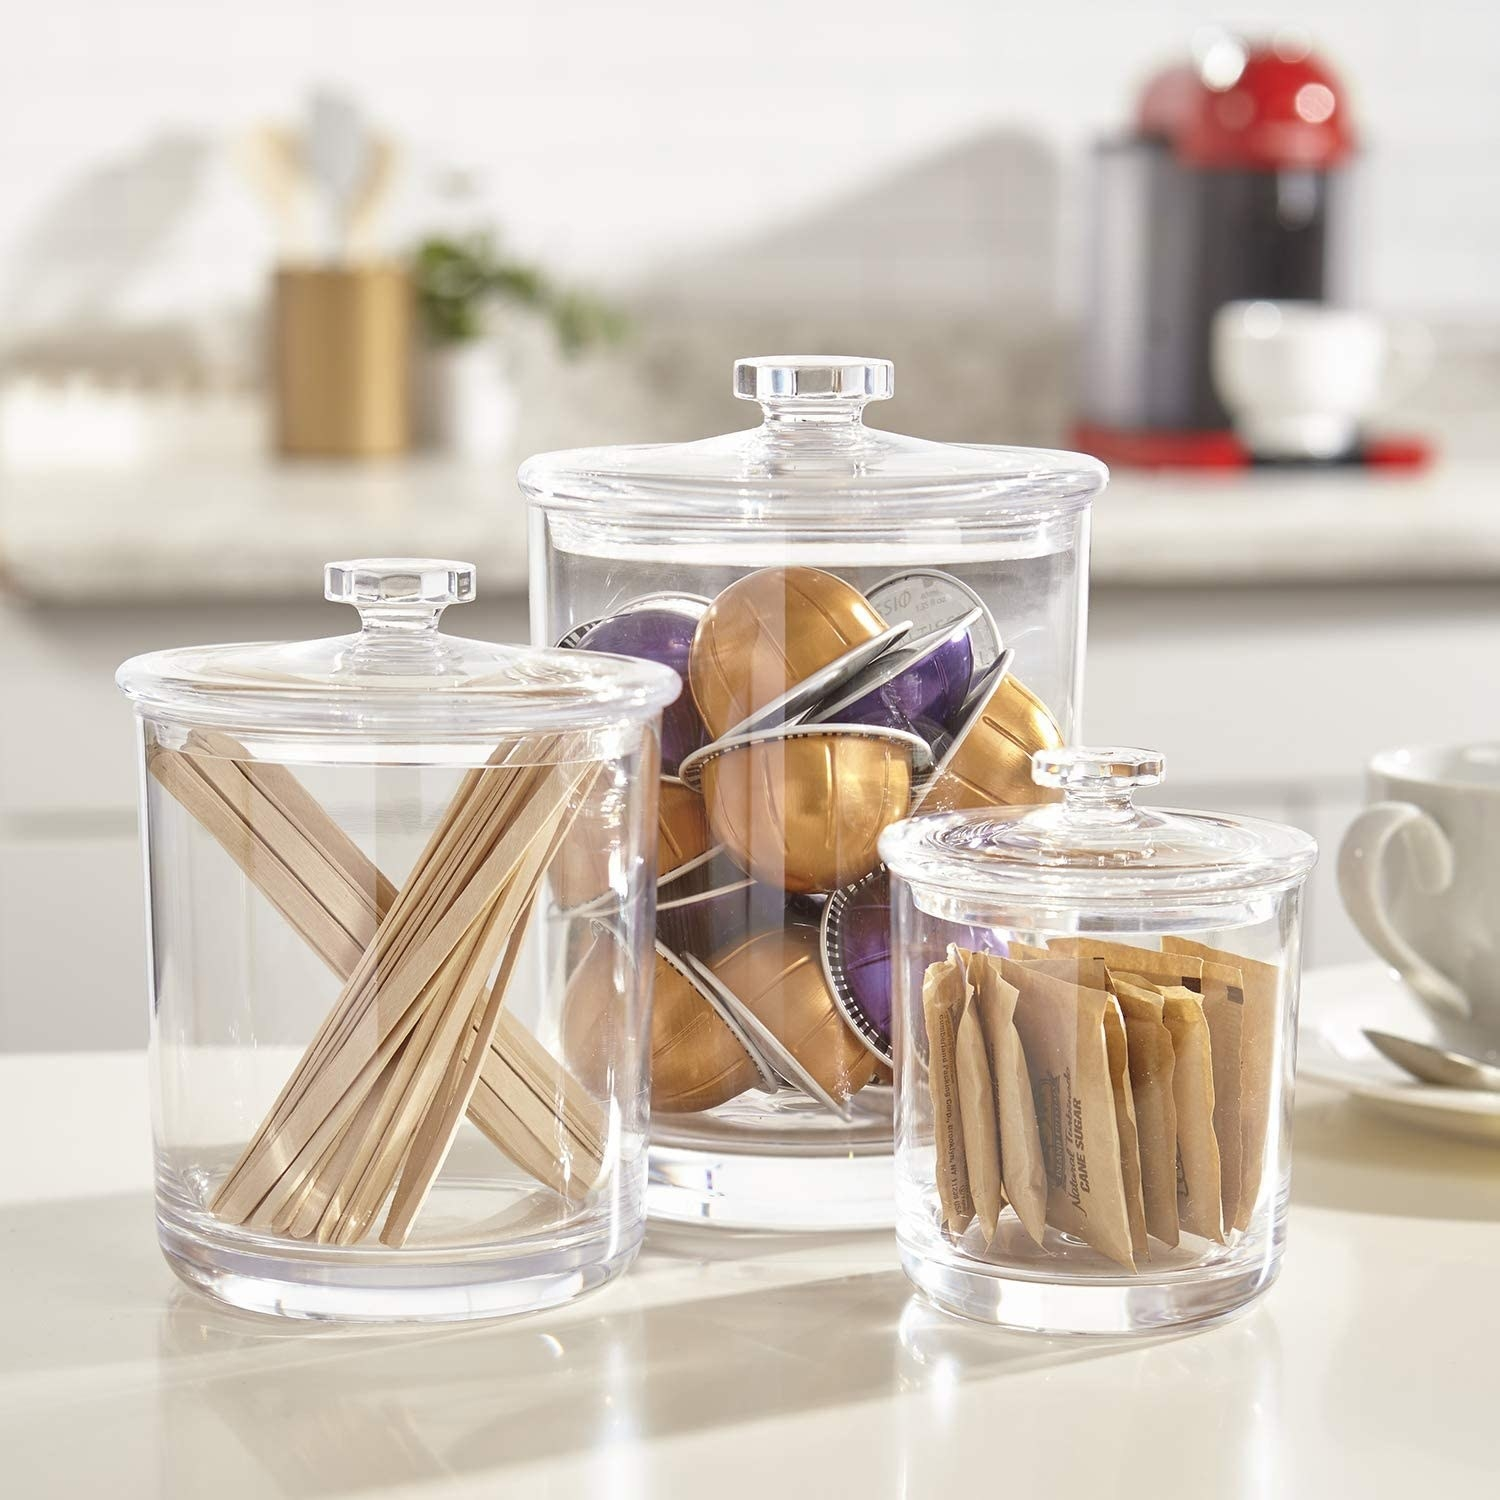 the three containers on a counter filled with nespresso pods, sugar packets and stir sticks